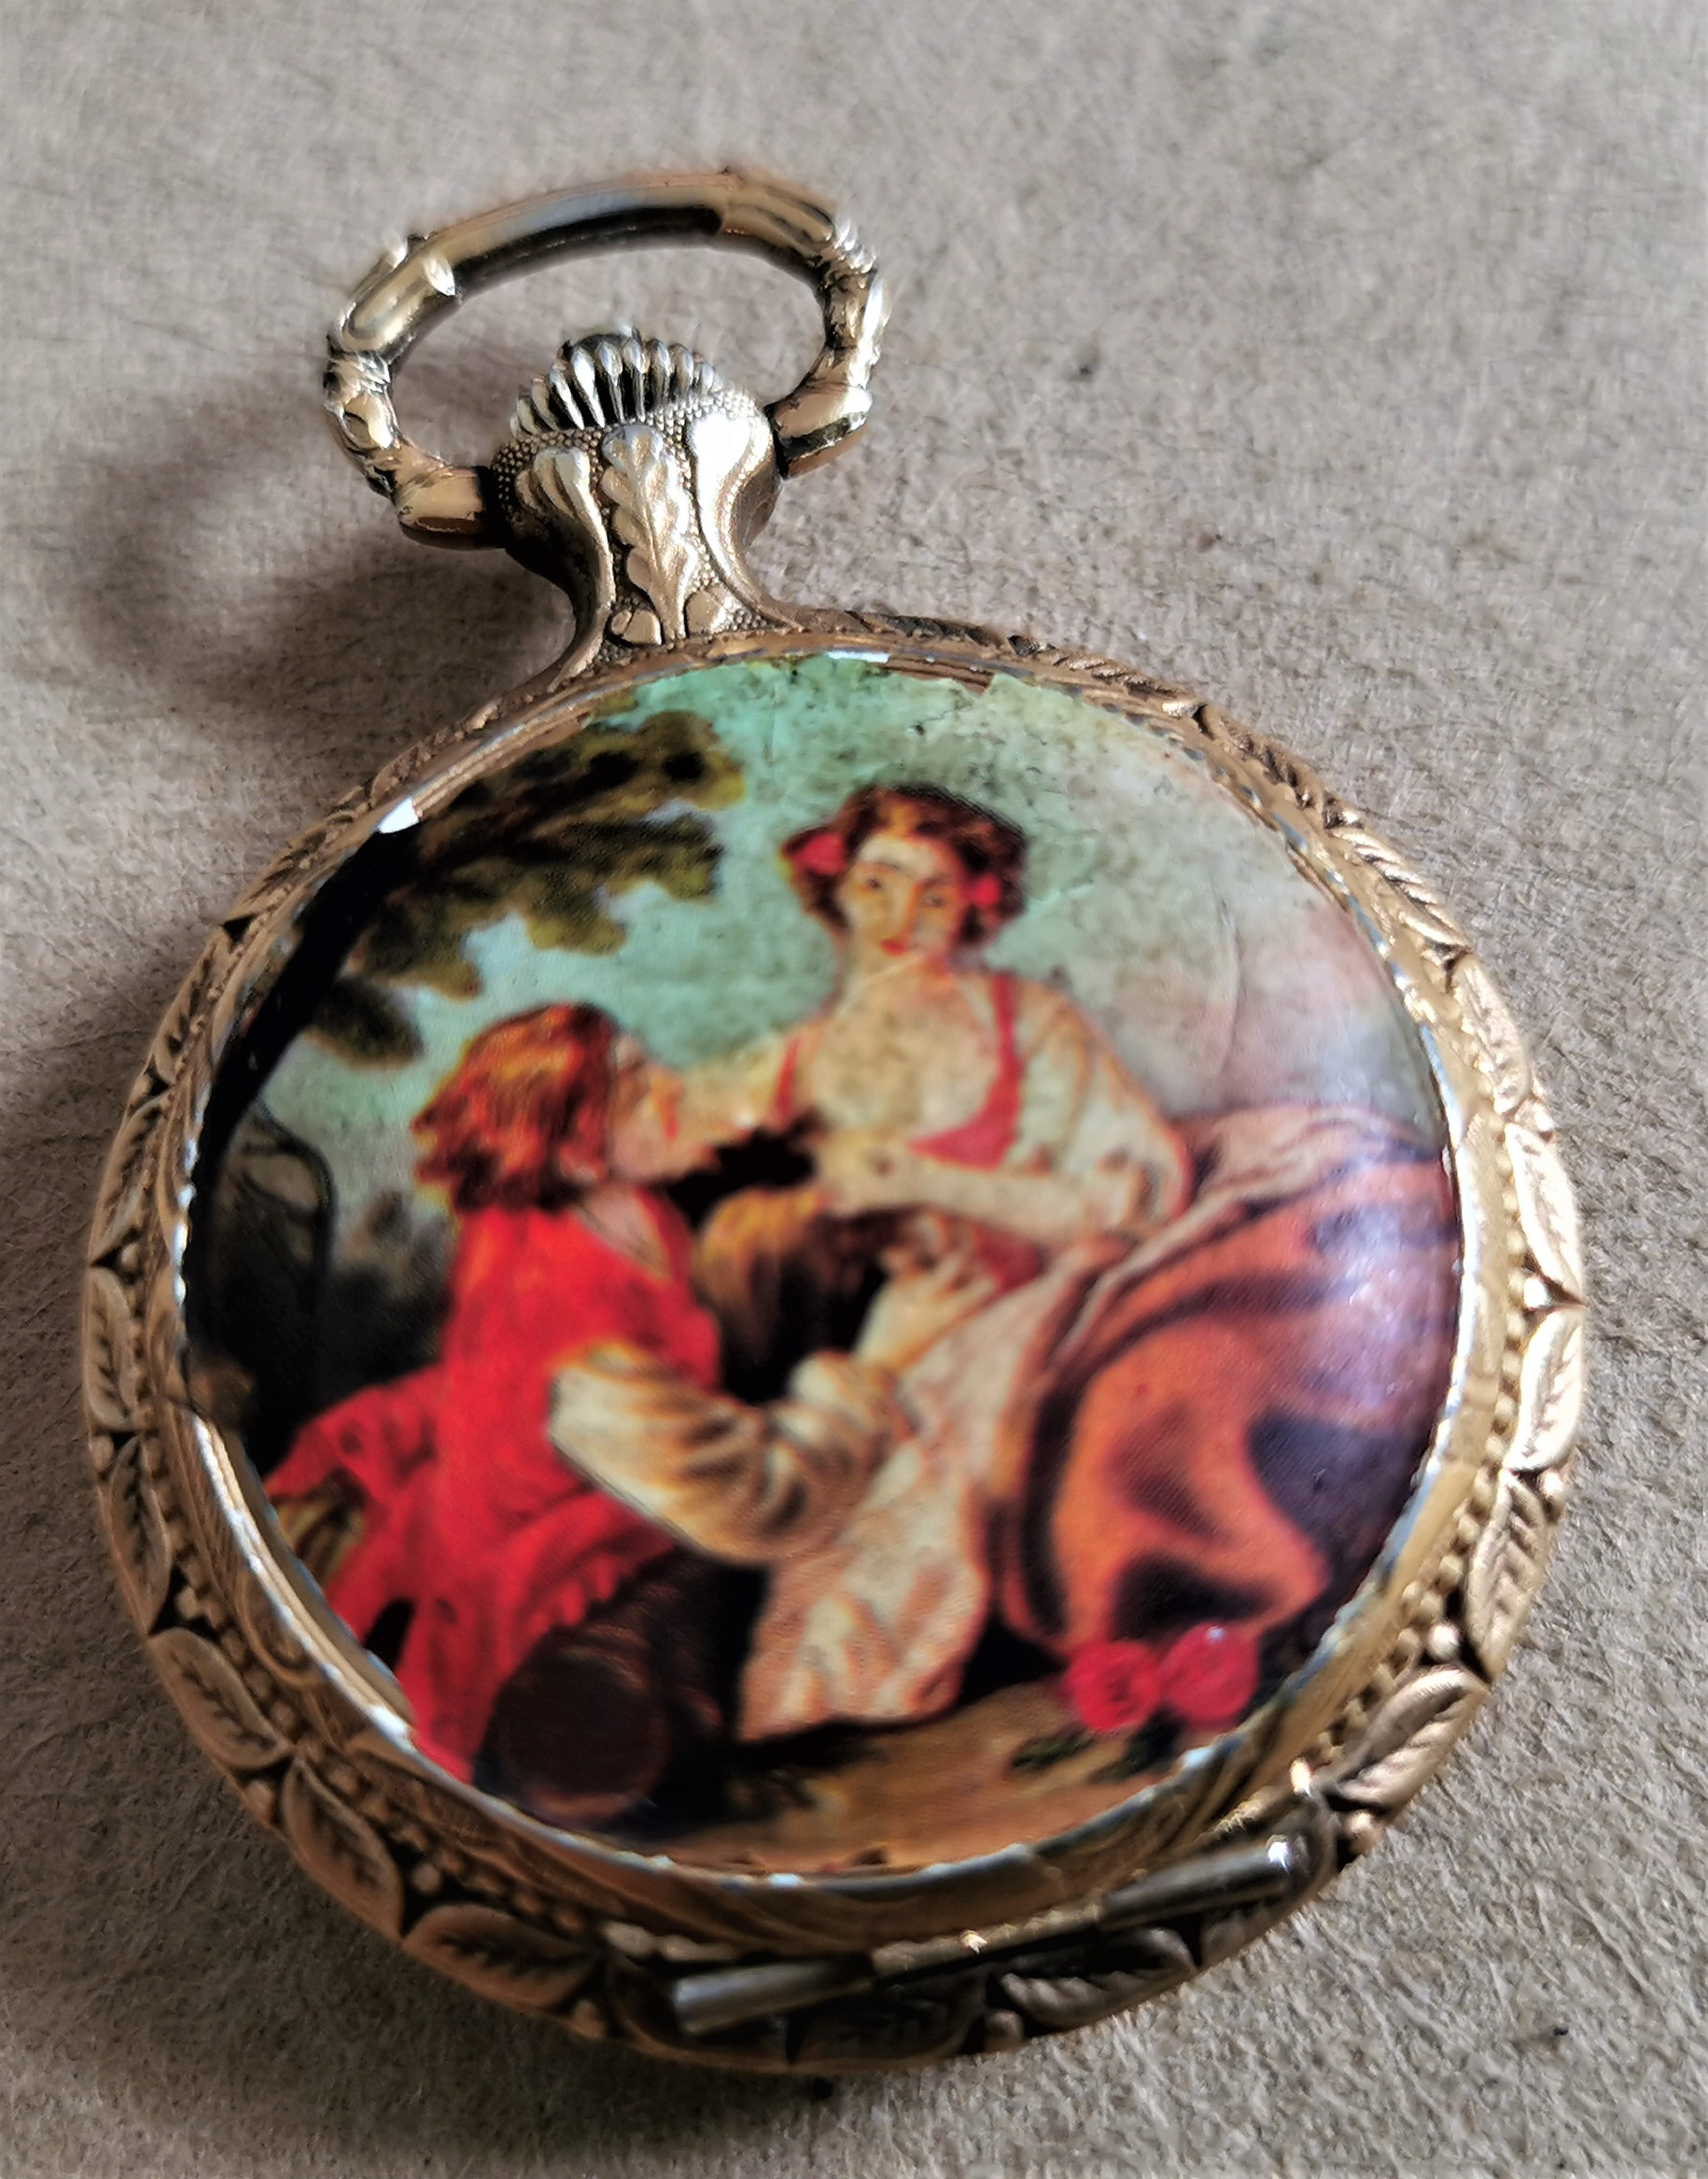 Anonimo Avia pocket watch romantic scene gold plated mm 37 manual wind 17 jewels Swiss Made | San Giorgio a Cremano